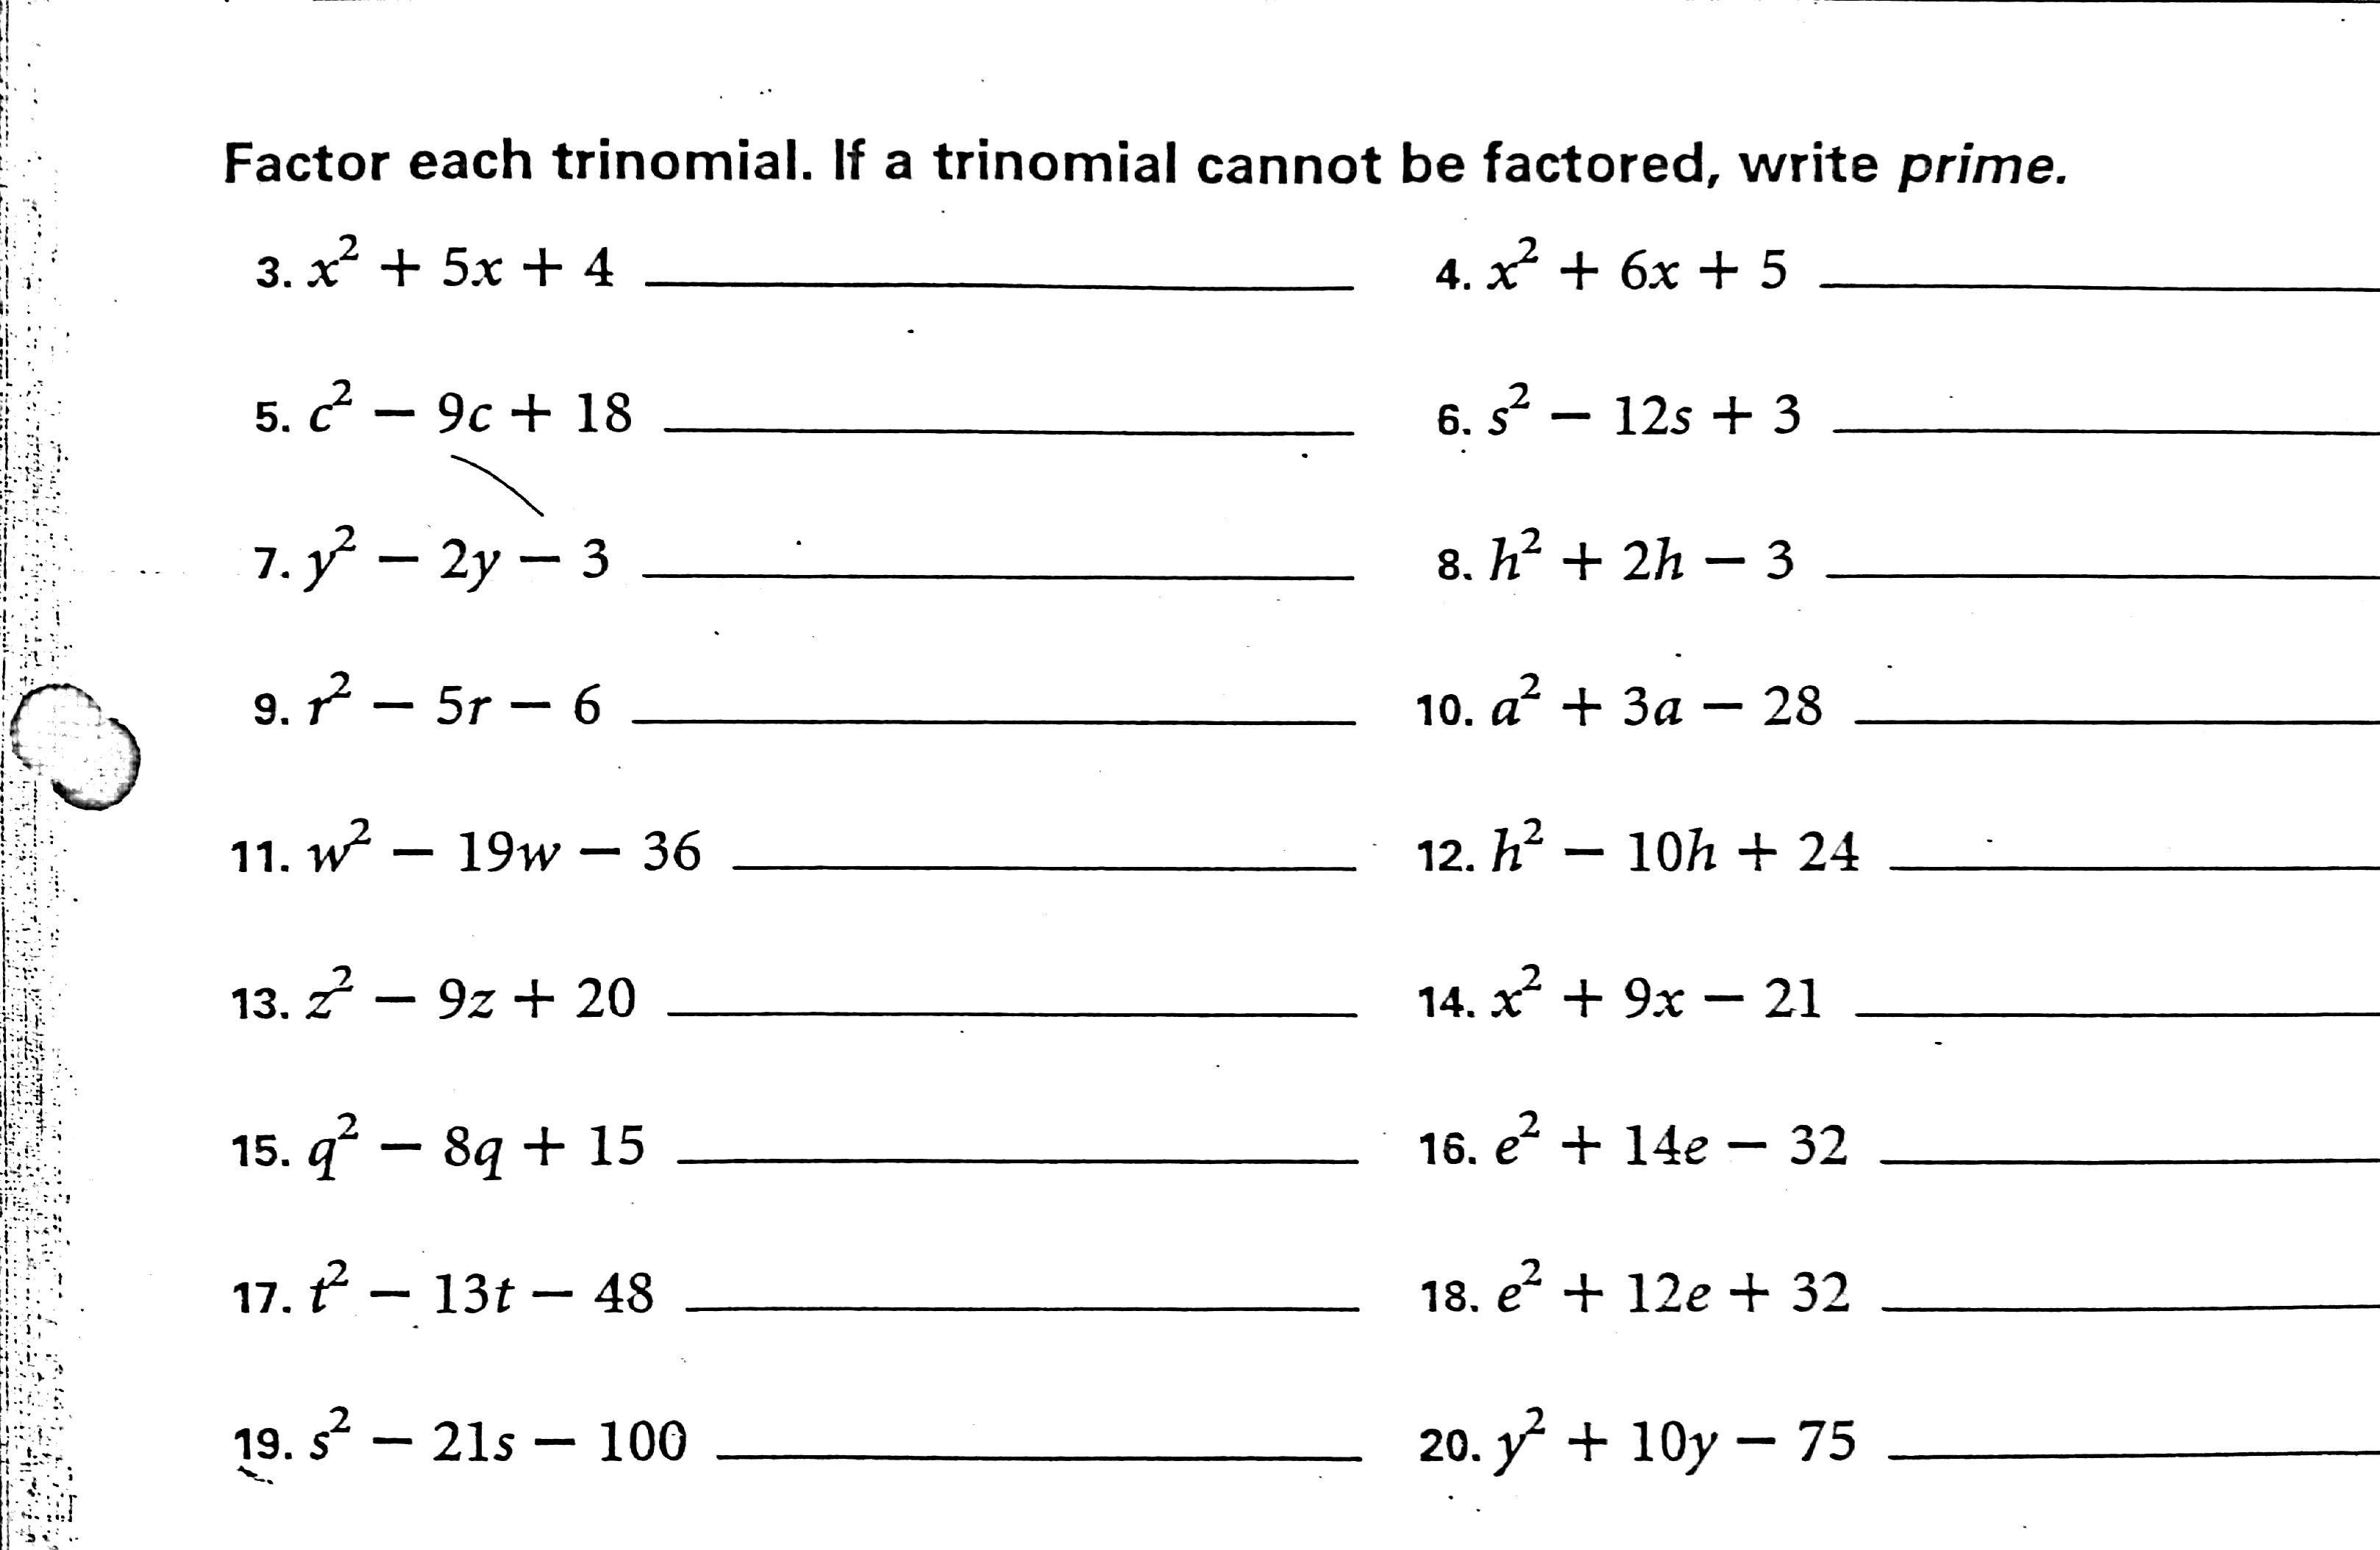 worksheet Factoring Perfect Square Trinomials Worksheet printables perfect square trinomial worksheet jigglist thousands factoring trinomials abitlikethis worksheet